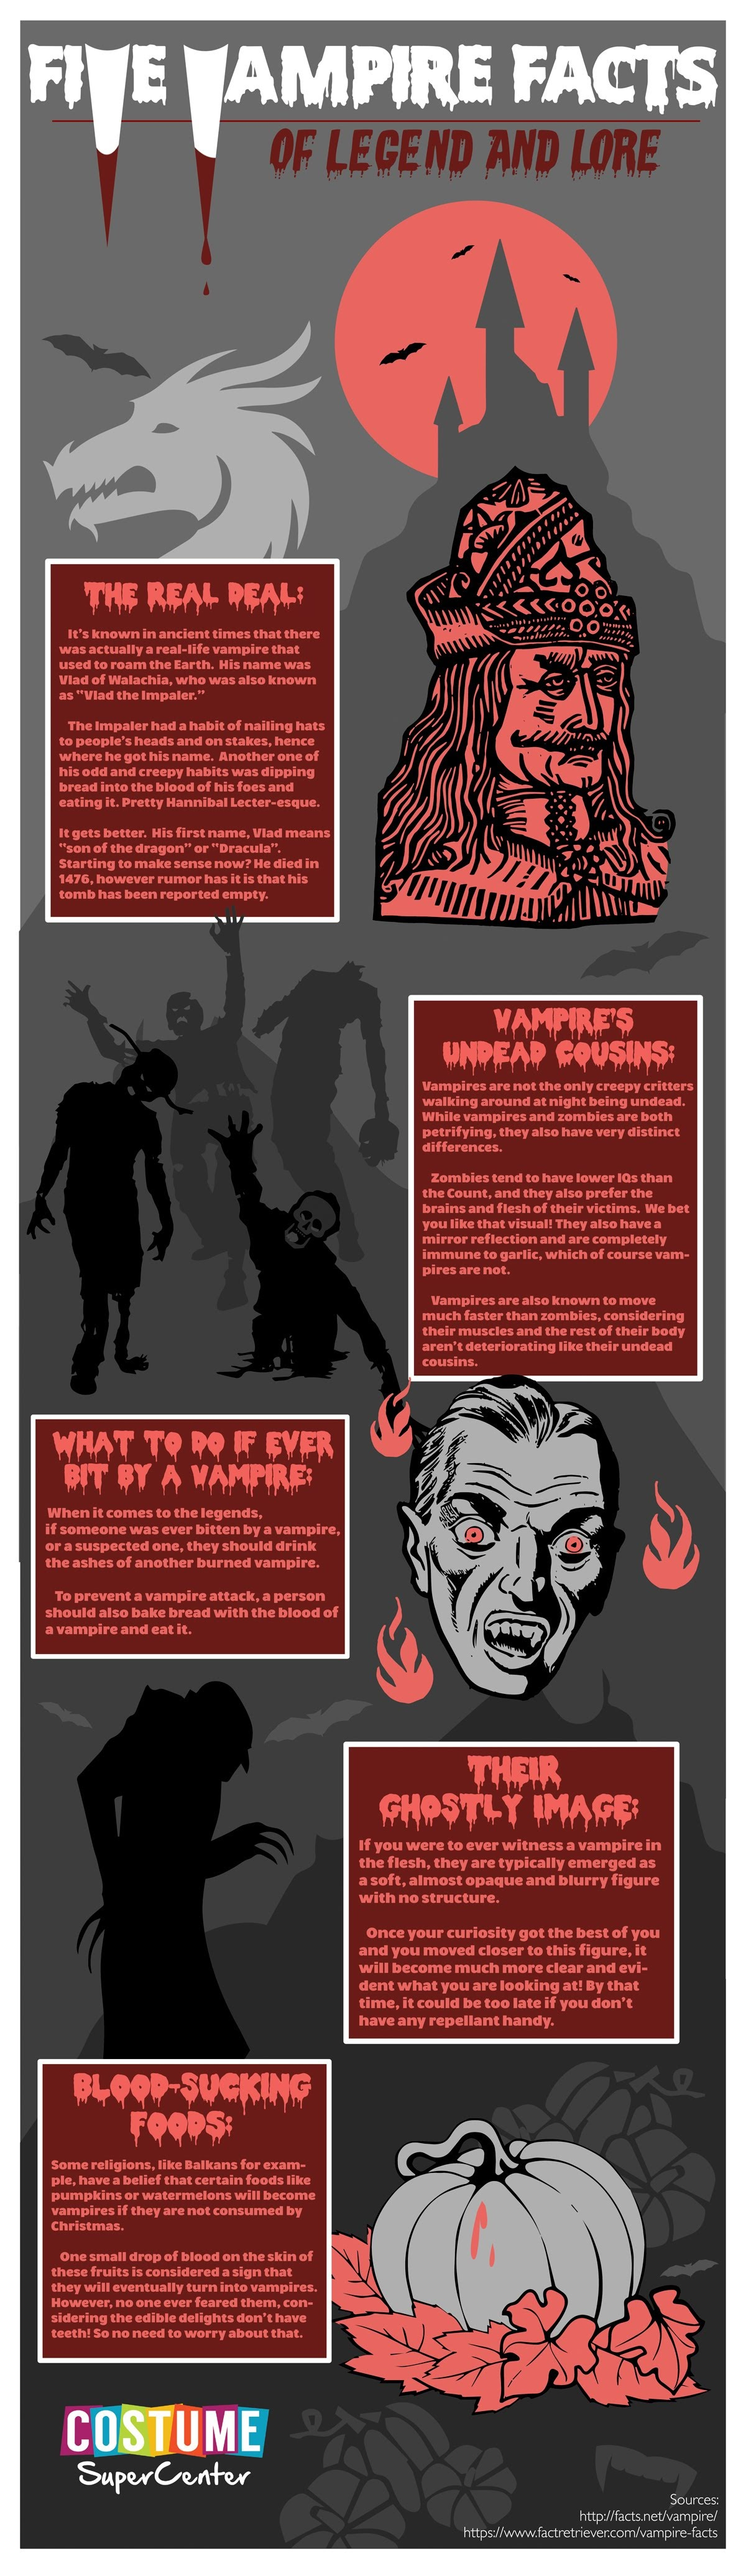 Five Vampire Facts Legend And Lore #Infographic